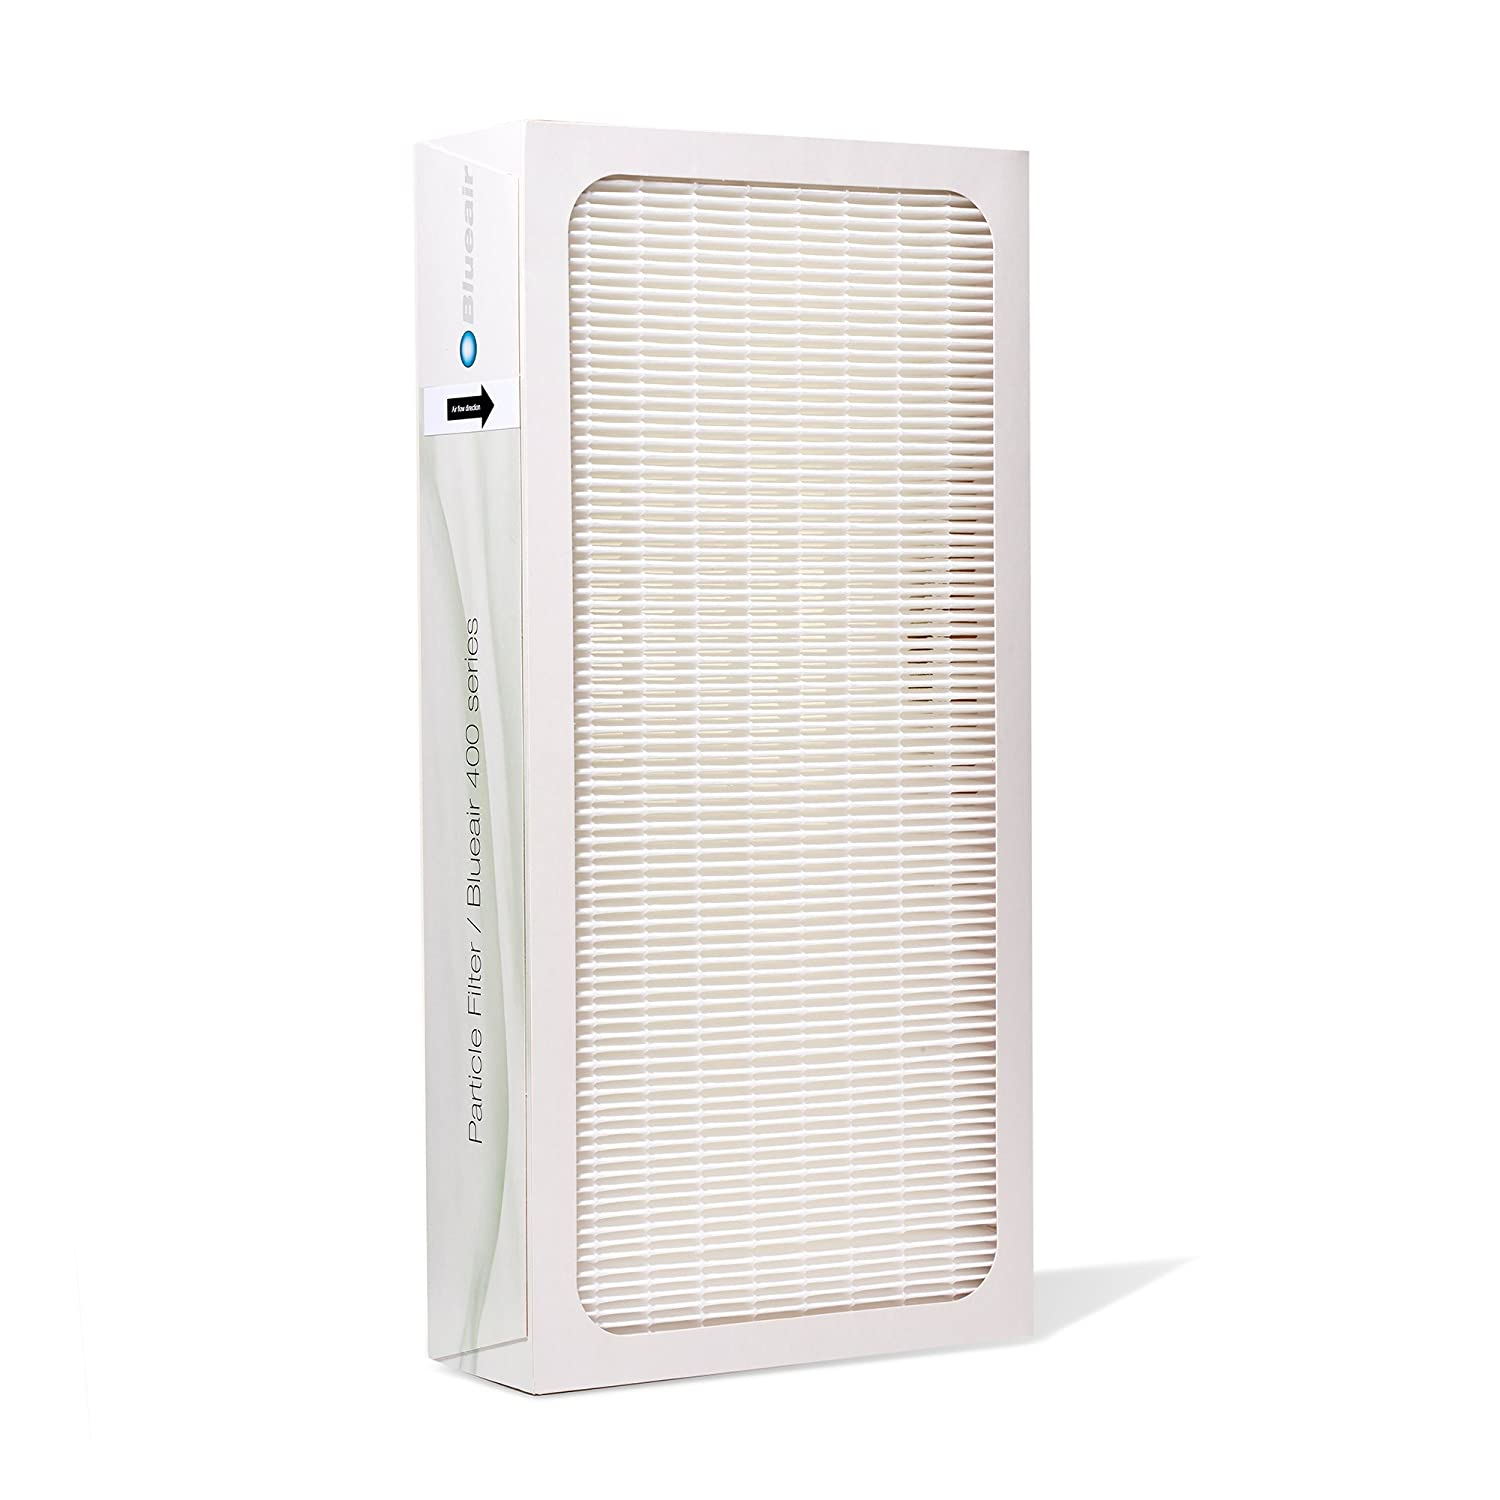 Hamilton Beach True Air Allergen-Reducing Ultra Quiet Air Cleaner Purifier with Permanent HEPA Filter